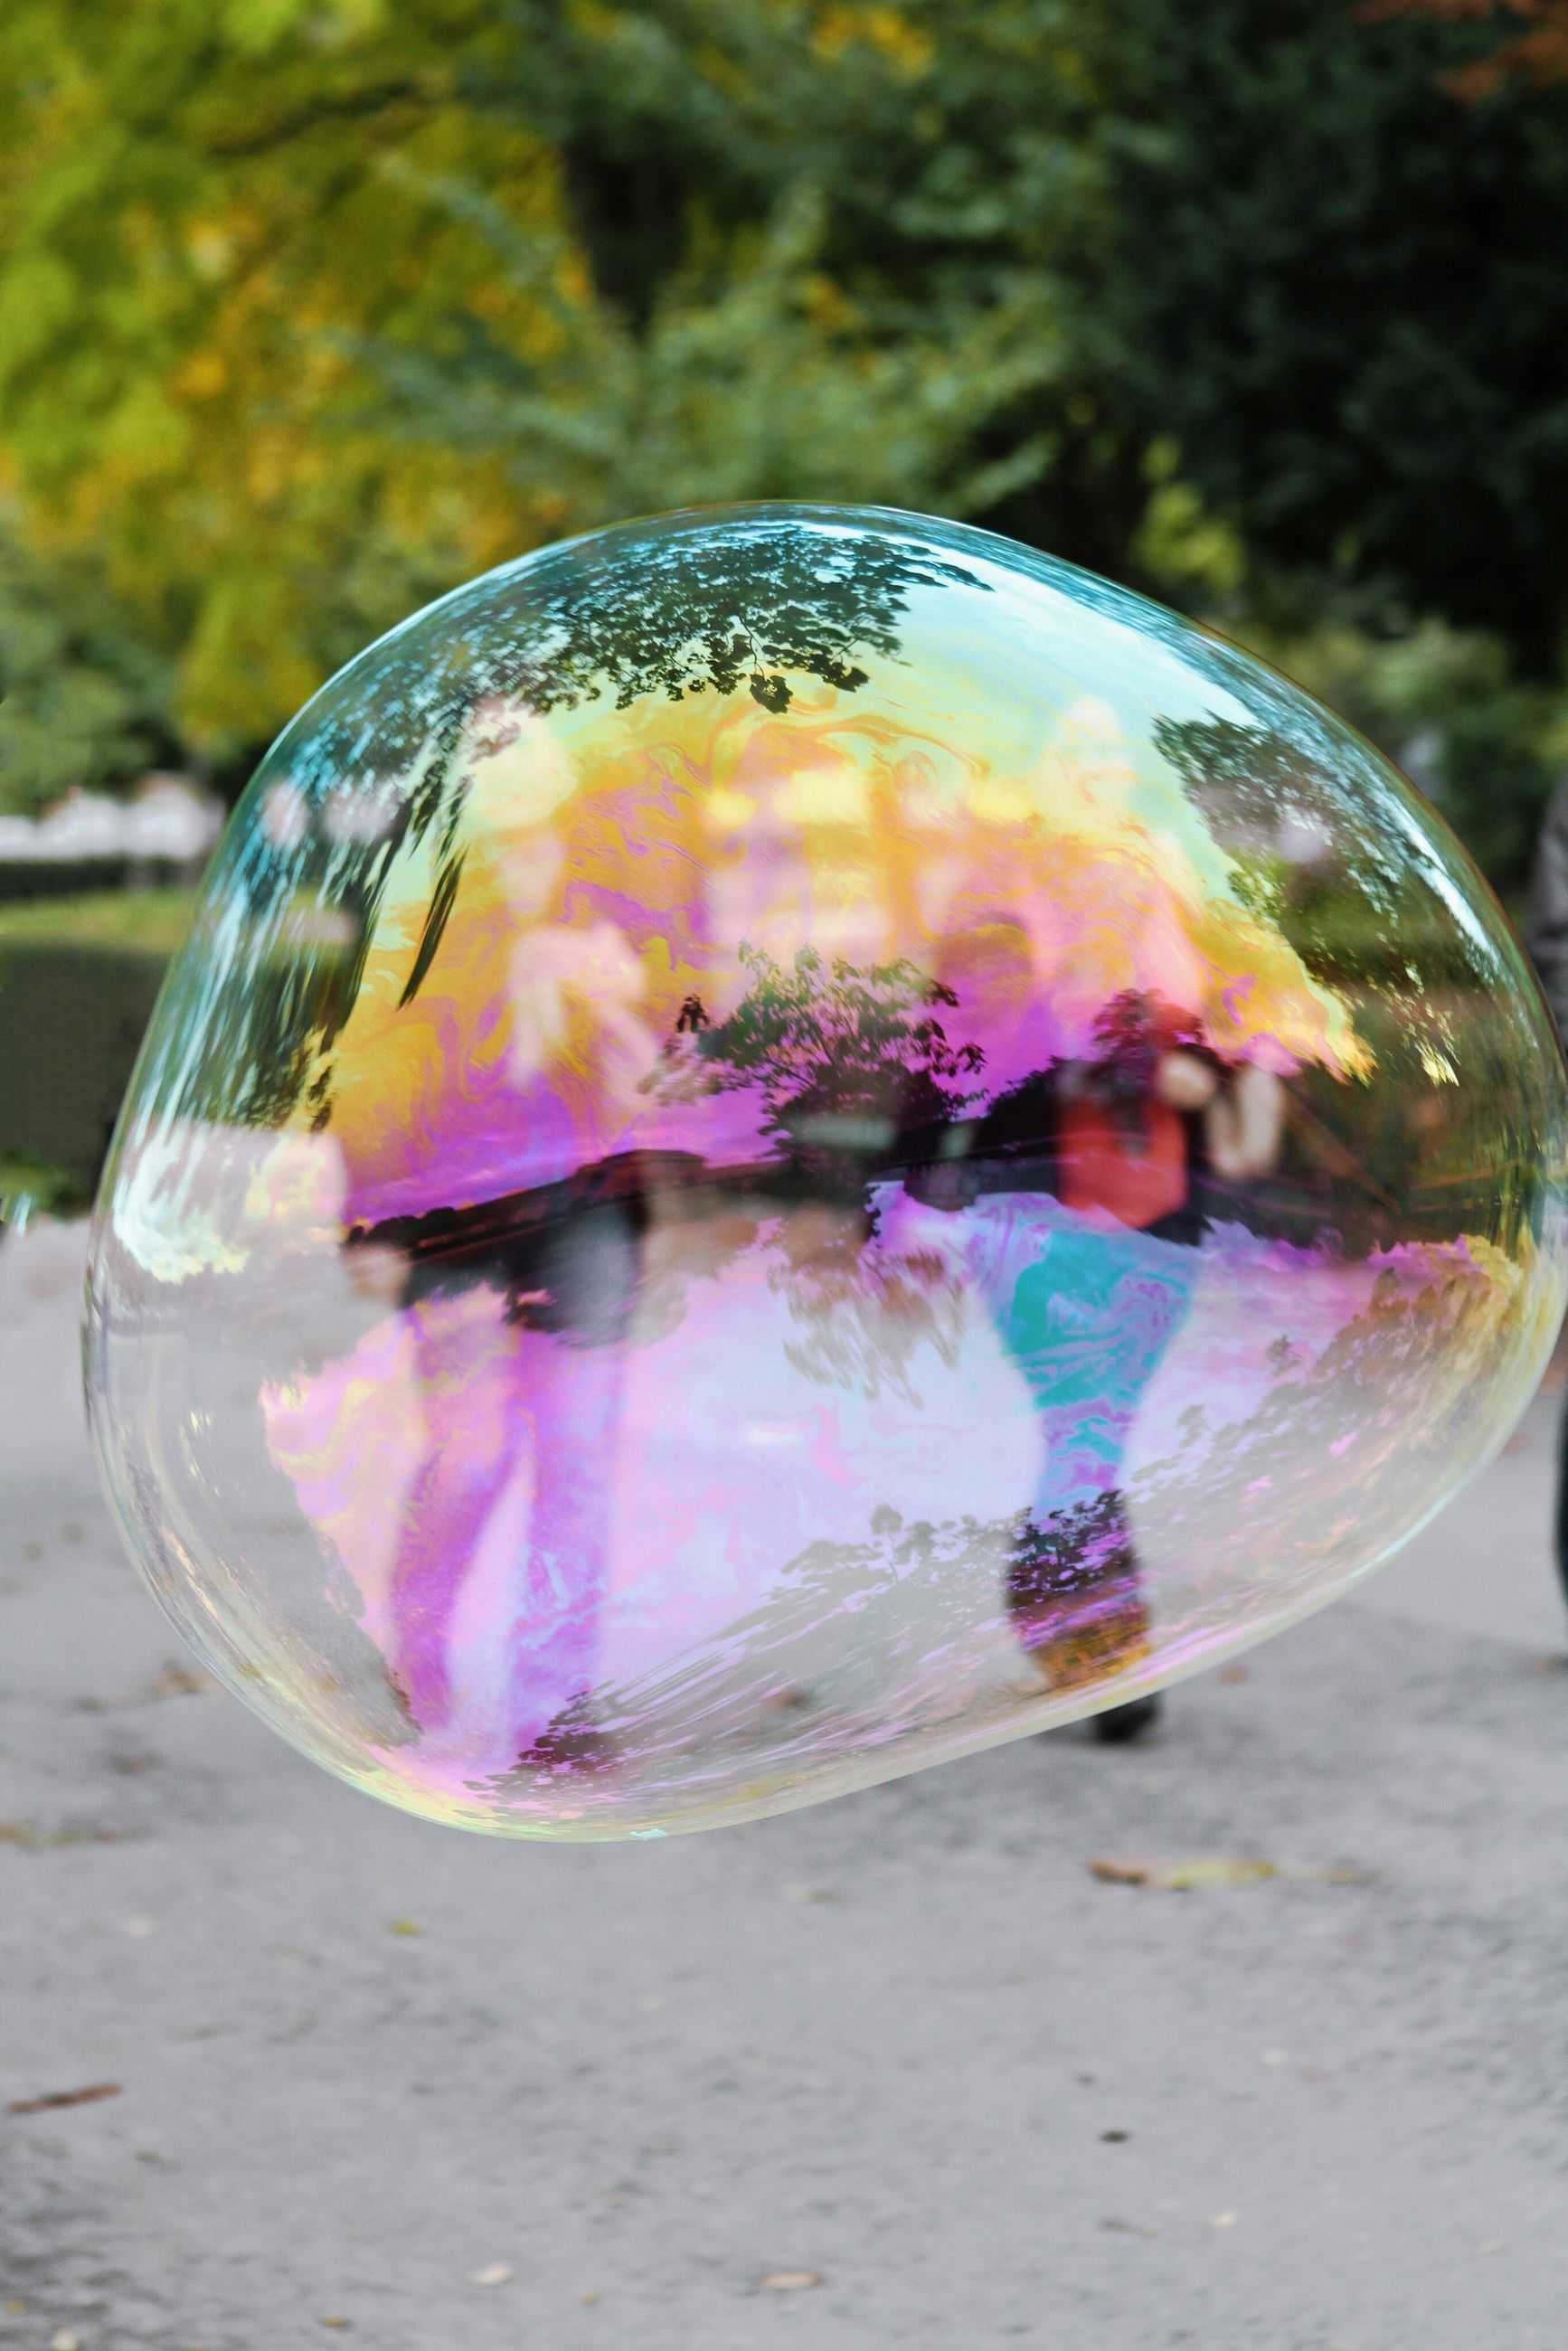 close-up, transparent, glass - material, bubble, multi colored, focus on foreground, sphere, fragility, reflection, animal themes, animals in the wild, day, no people, glass, outdoors, nature, water, wildlife, freshness, soap sud